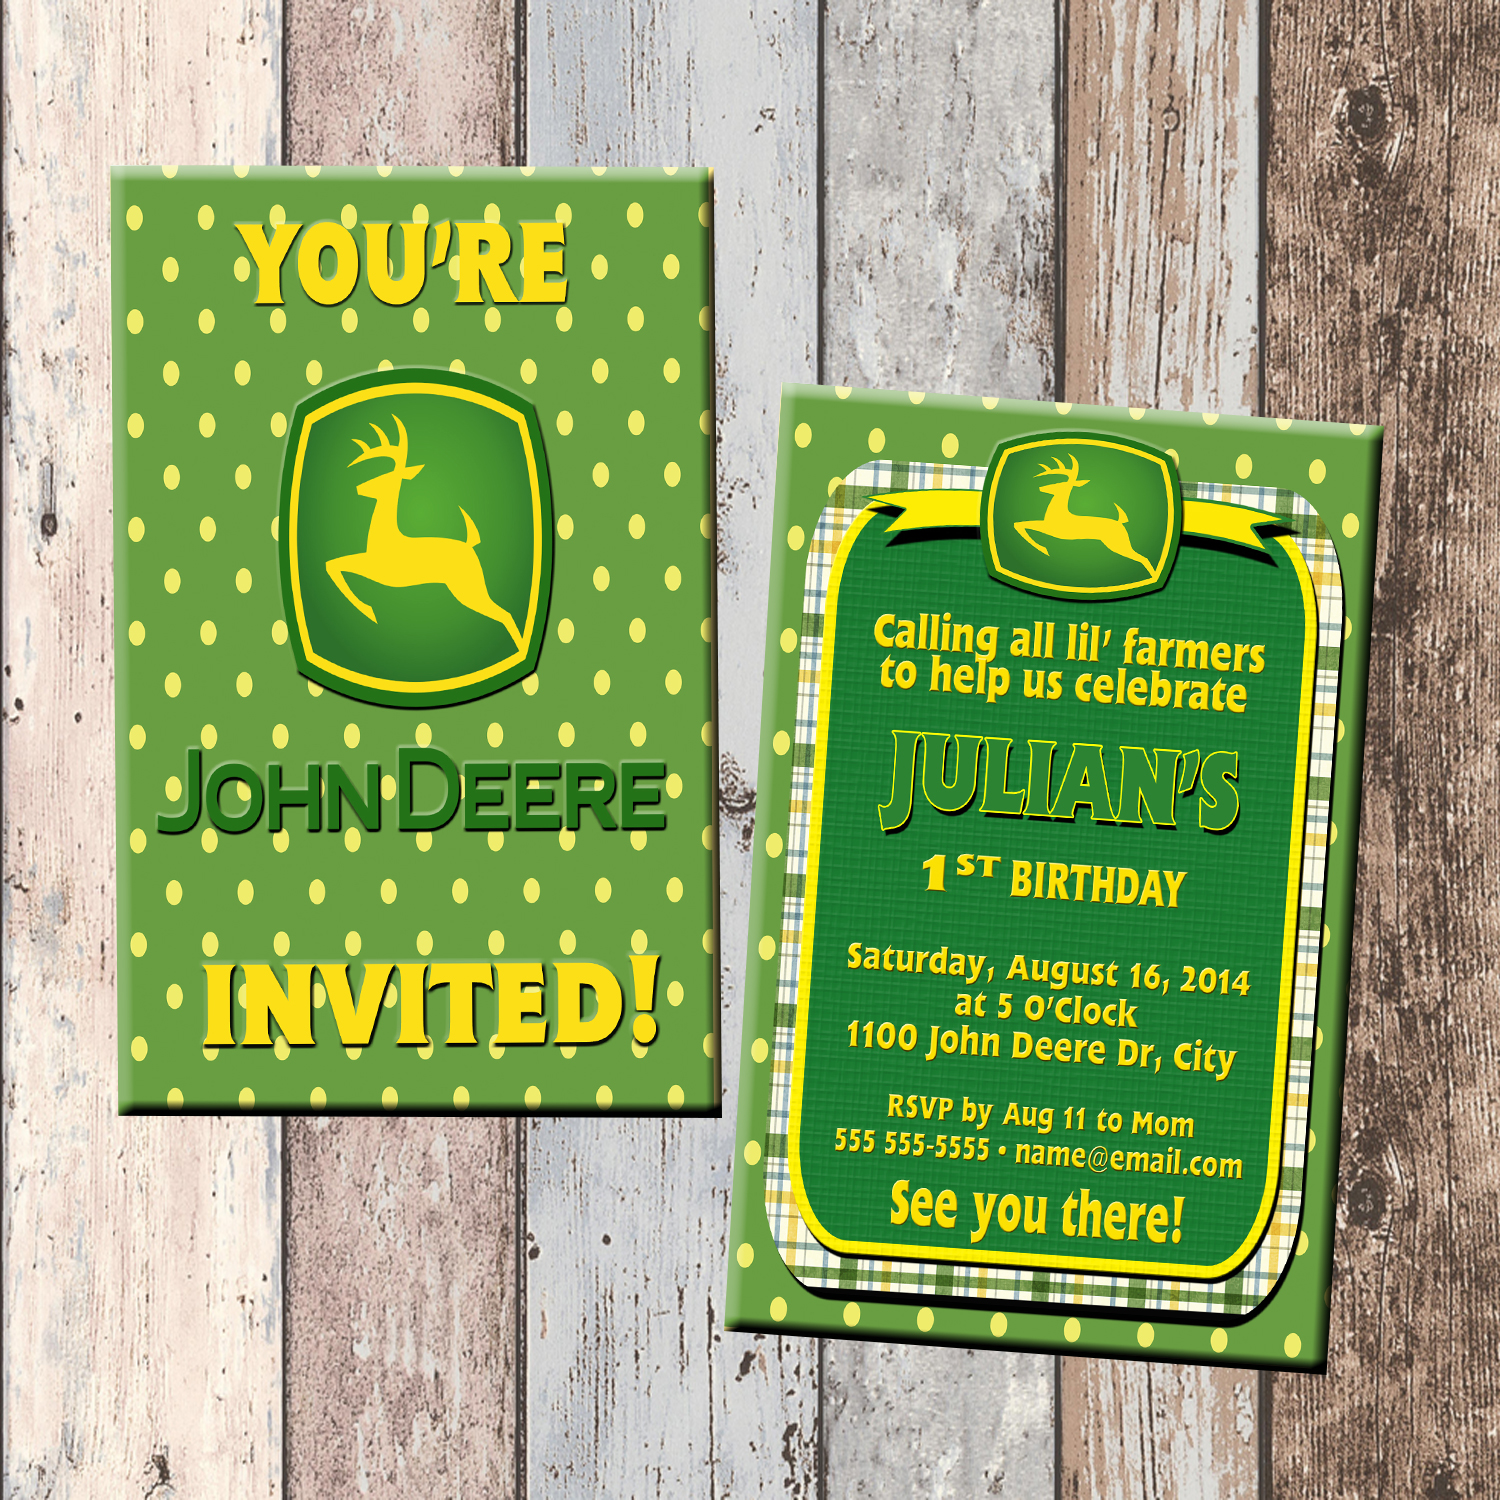 John Deere Tractor Boy Personalized Birthday Invitation 2 Sided Card Party